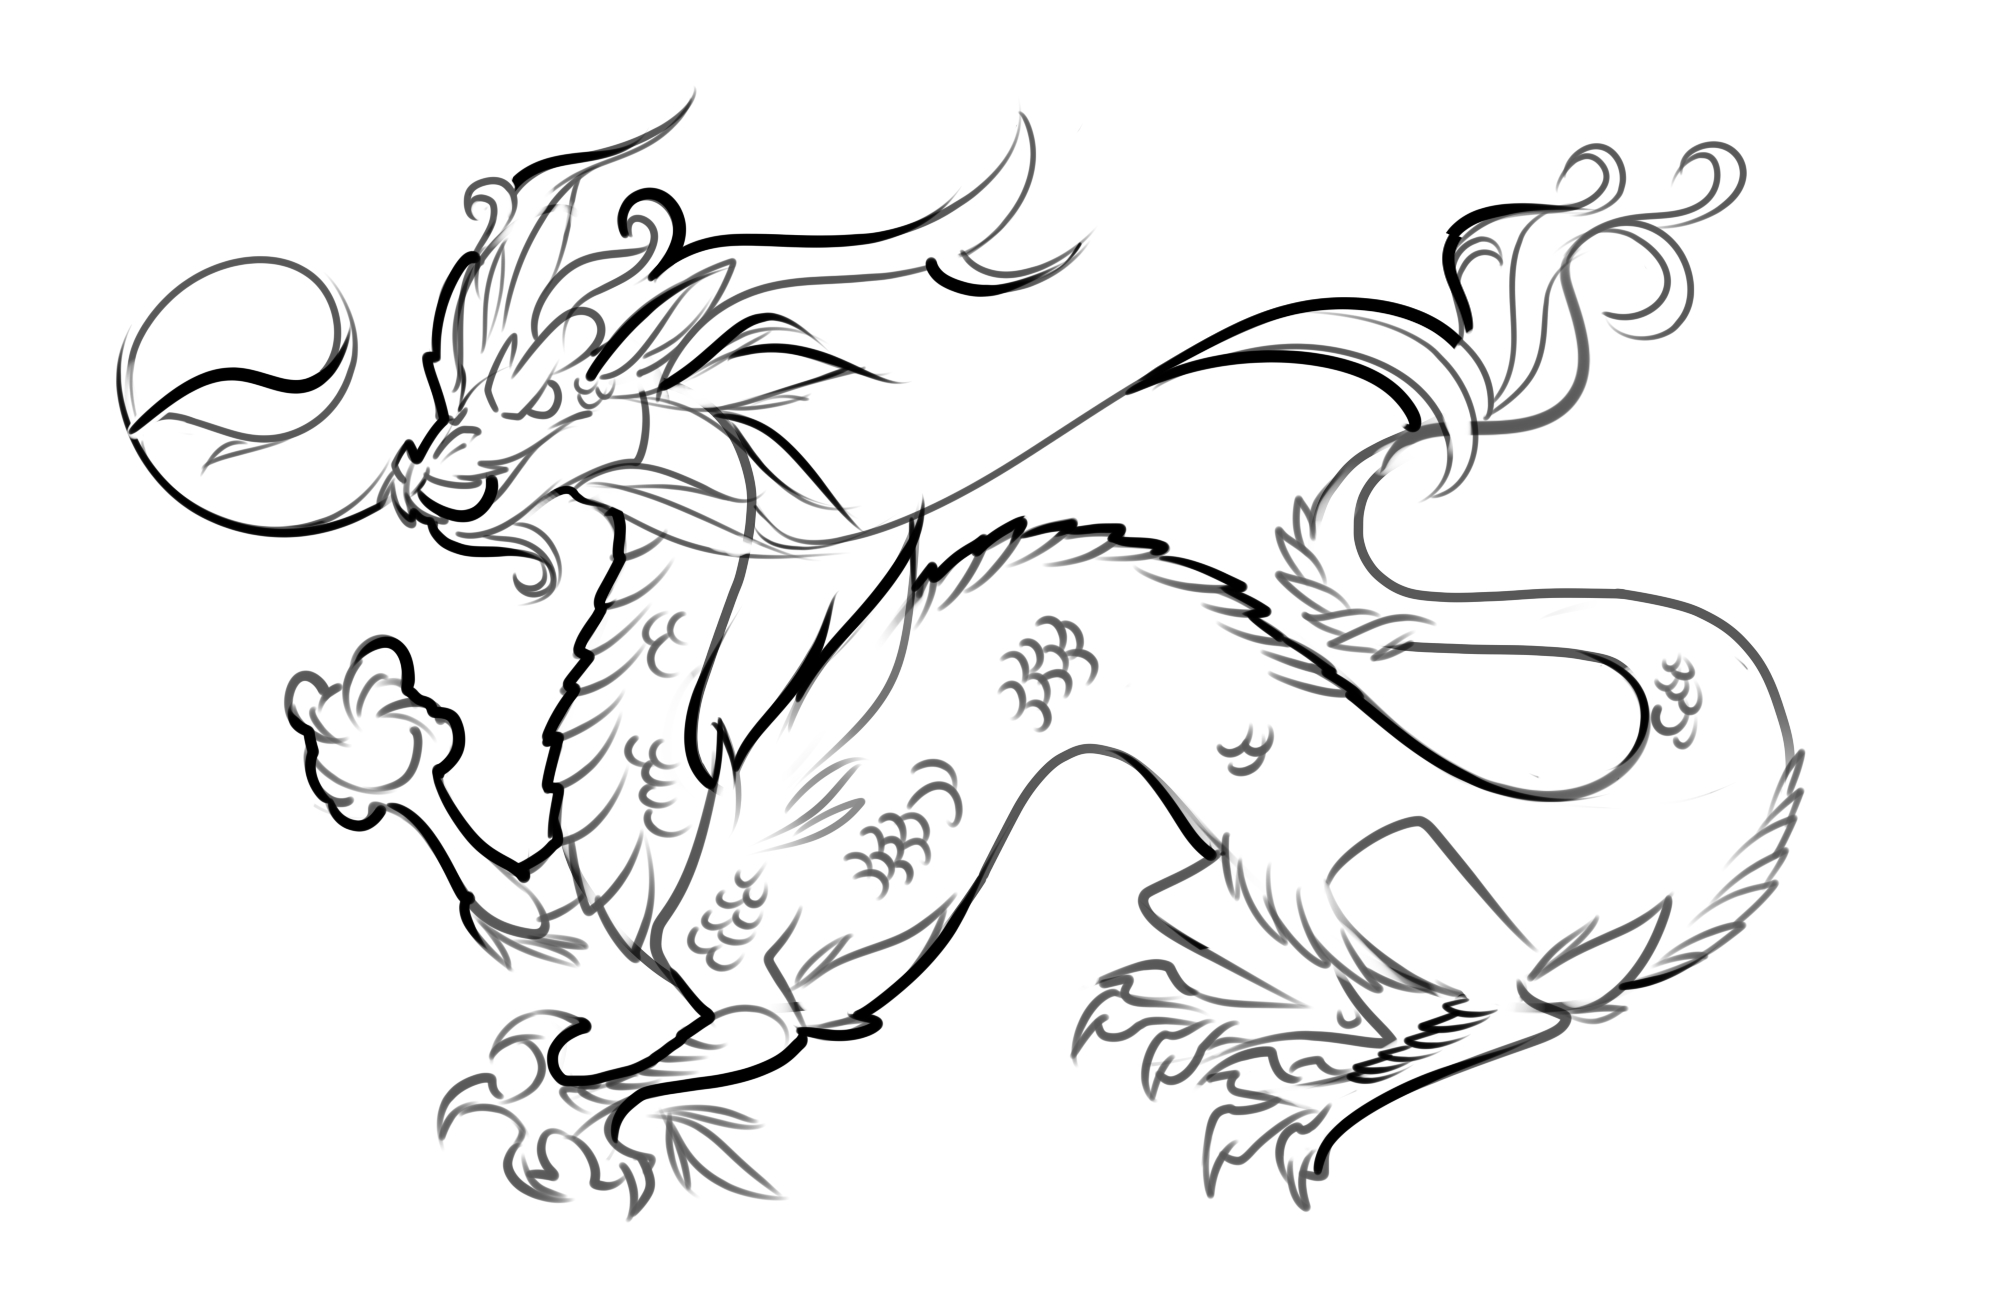 1990x1316 Dragon City Coloring Pages Ivector.co